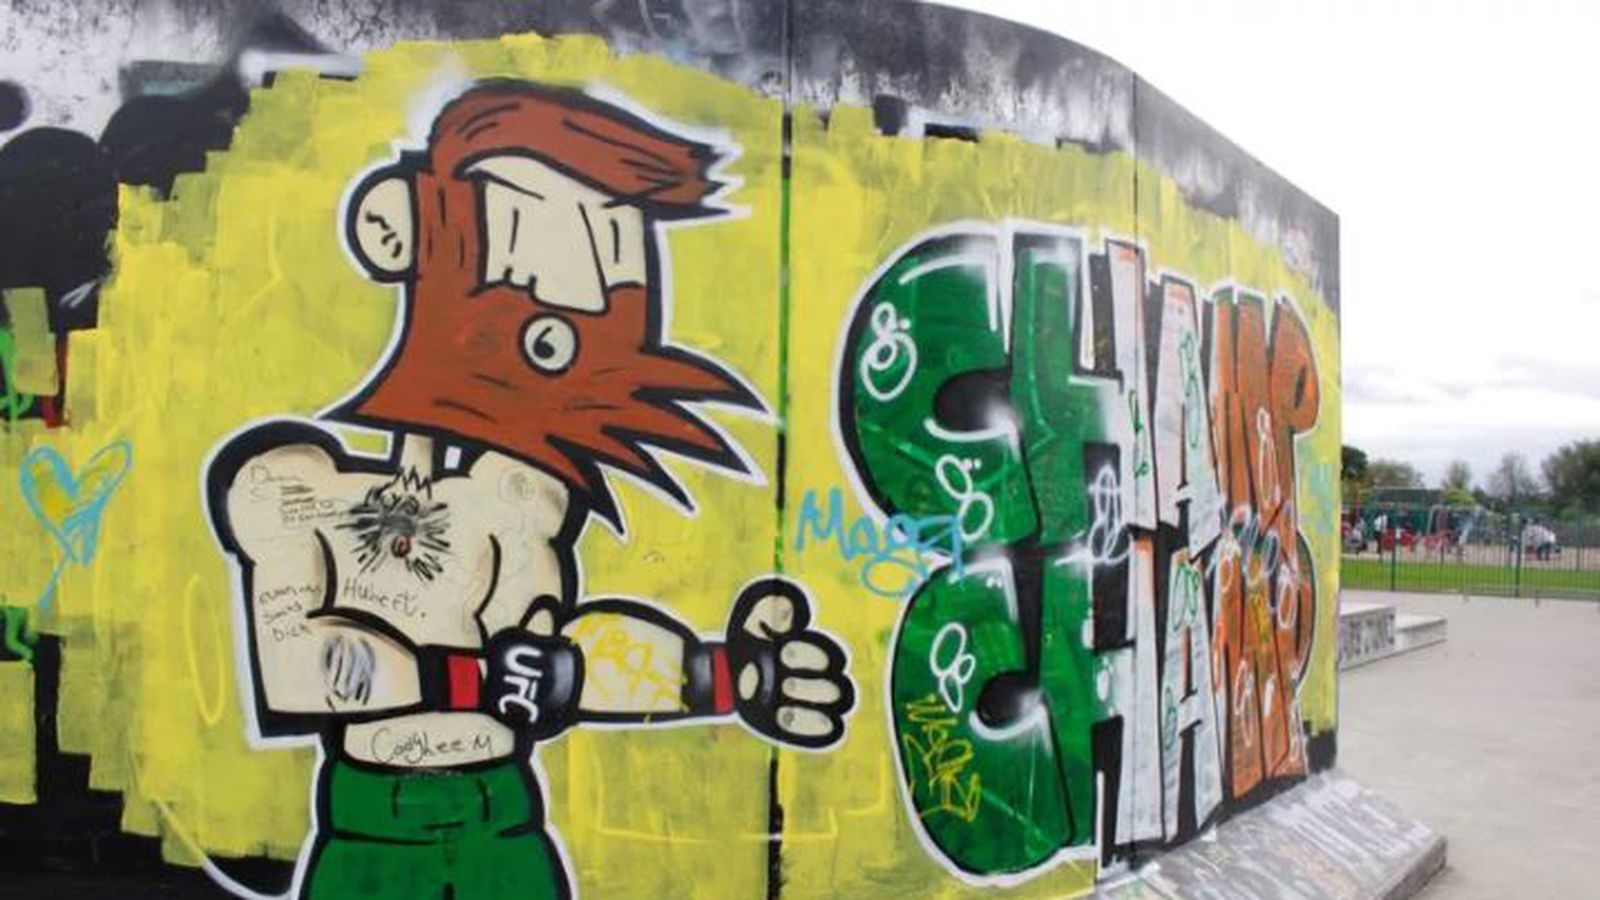 Dublin Pays Tribute To McGregor With Insane Street Art